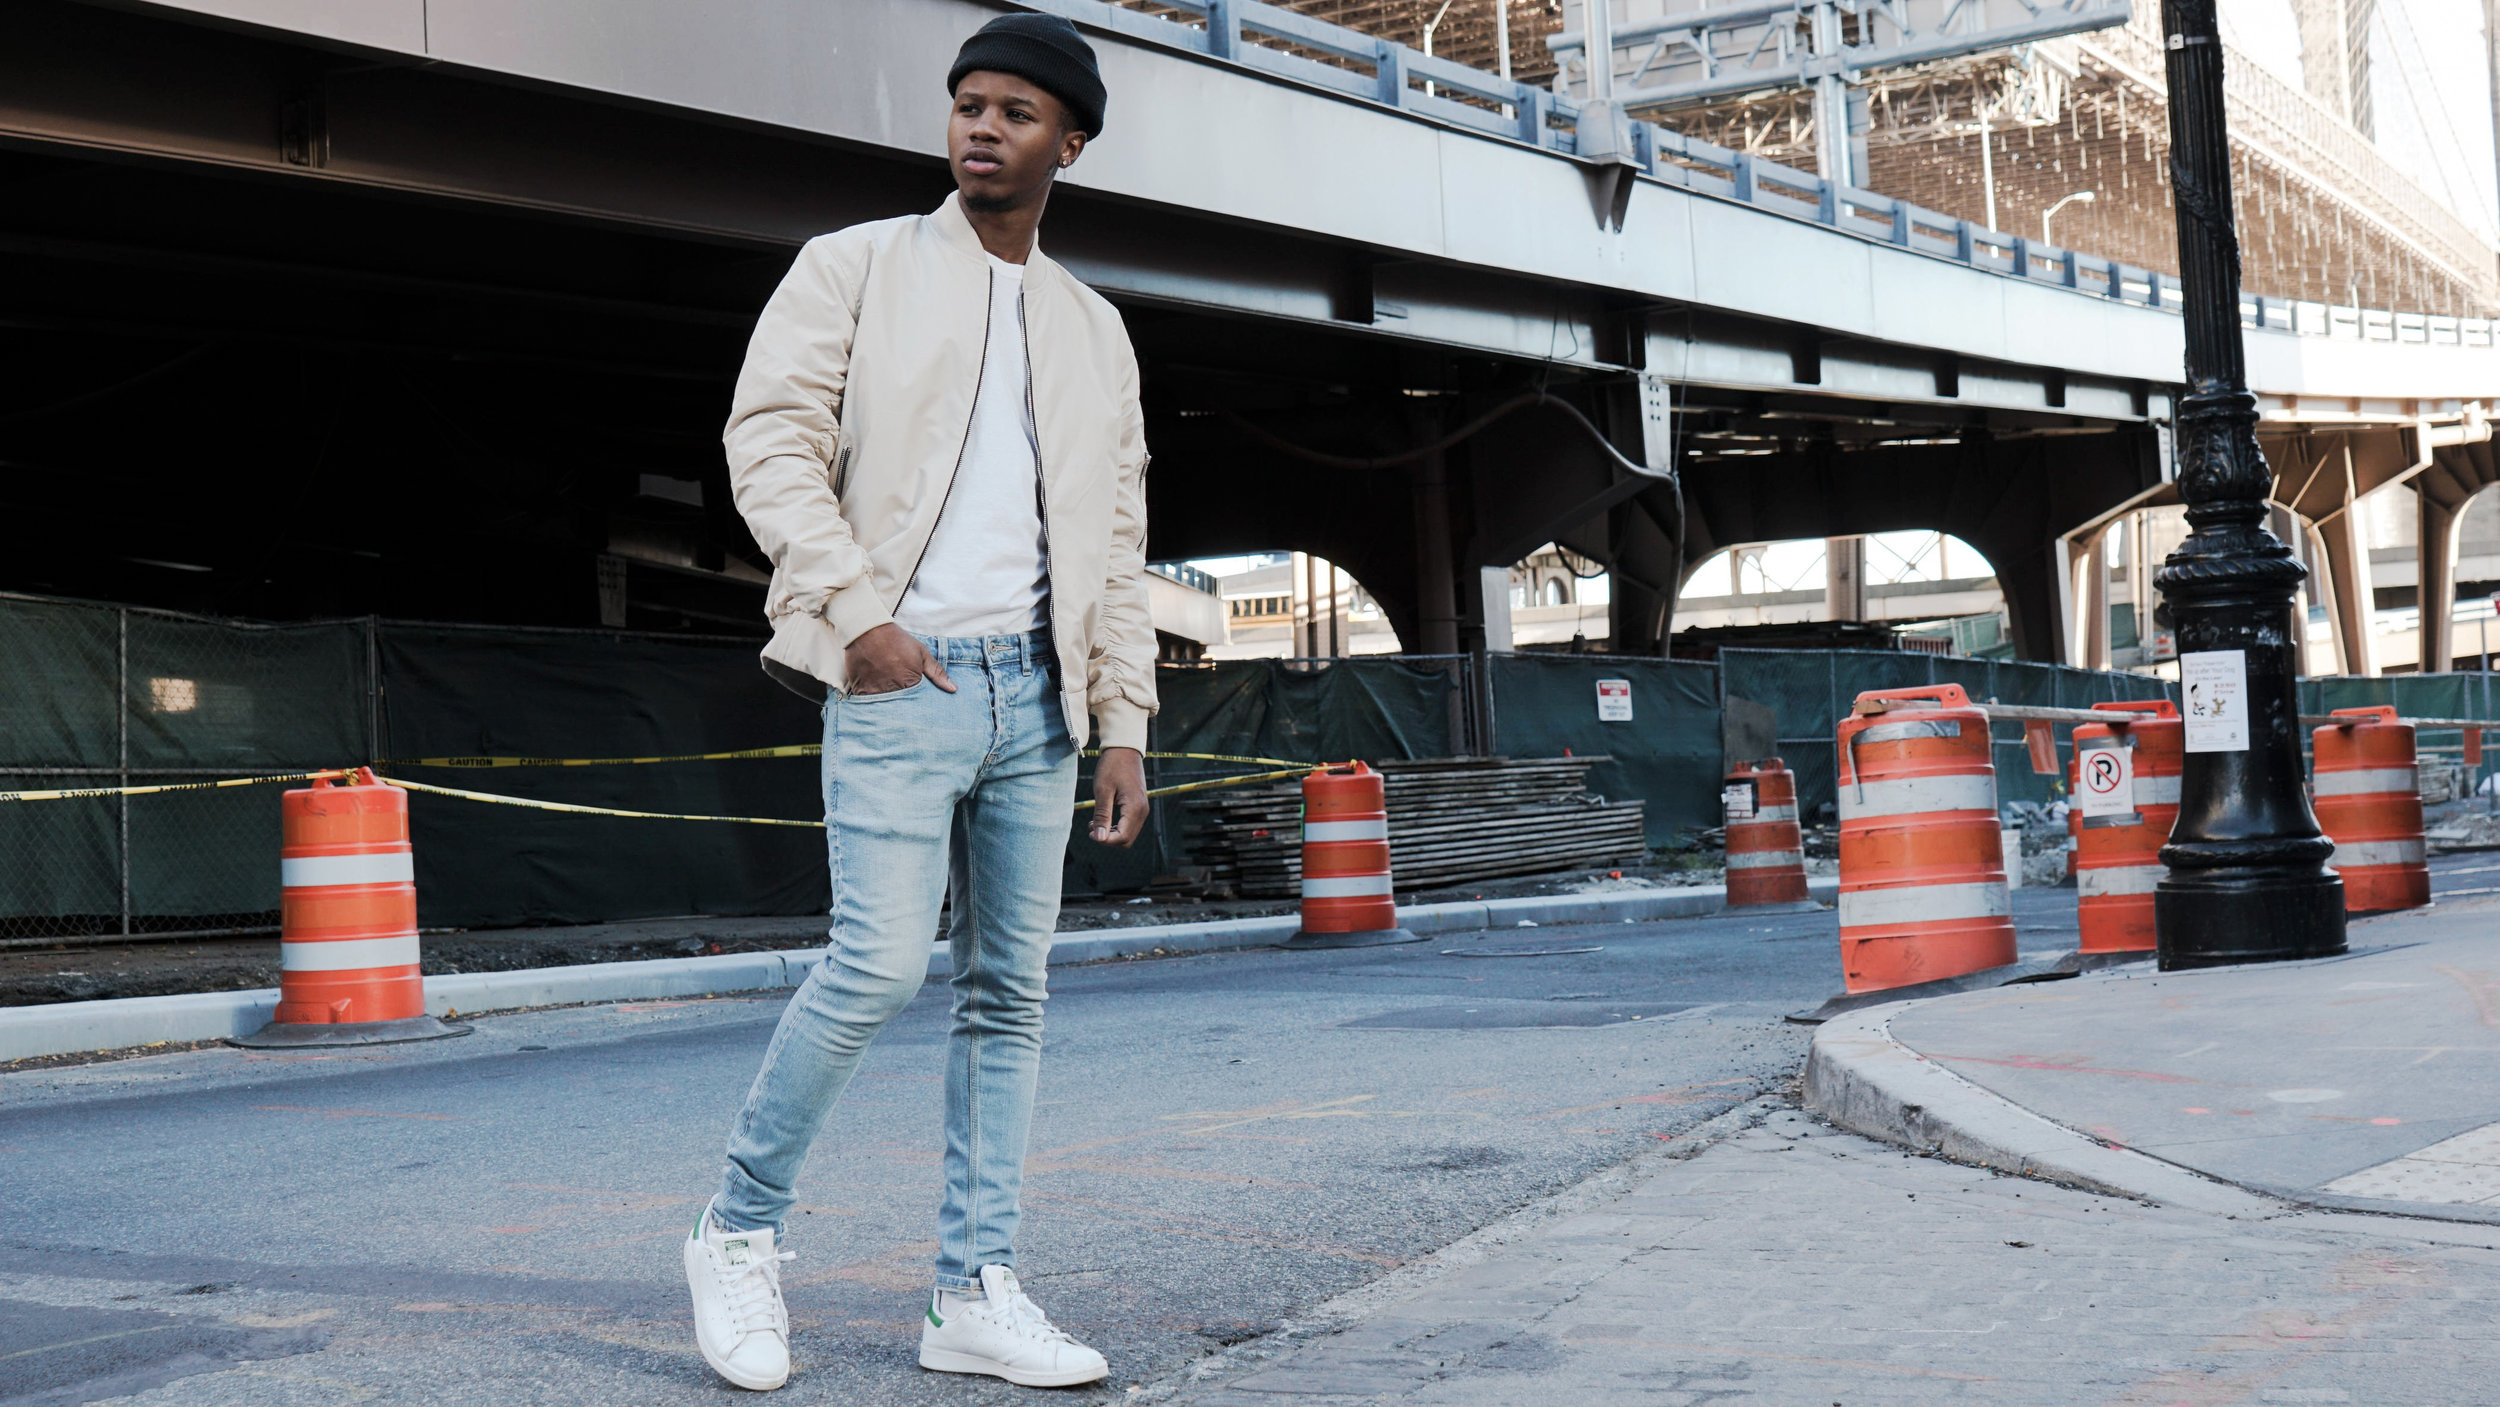 BURASSI - An interview with lifestyle clothing brand owner and designer, Gregory Scott.